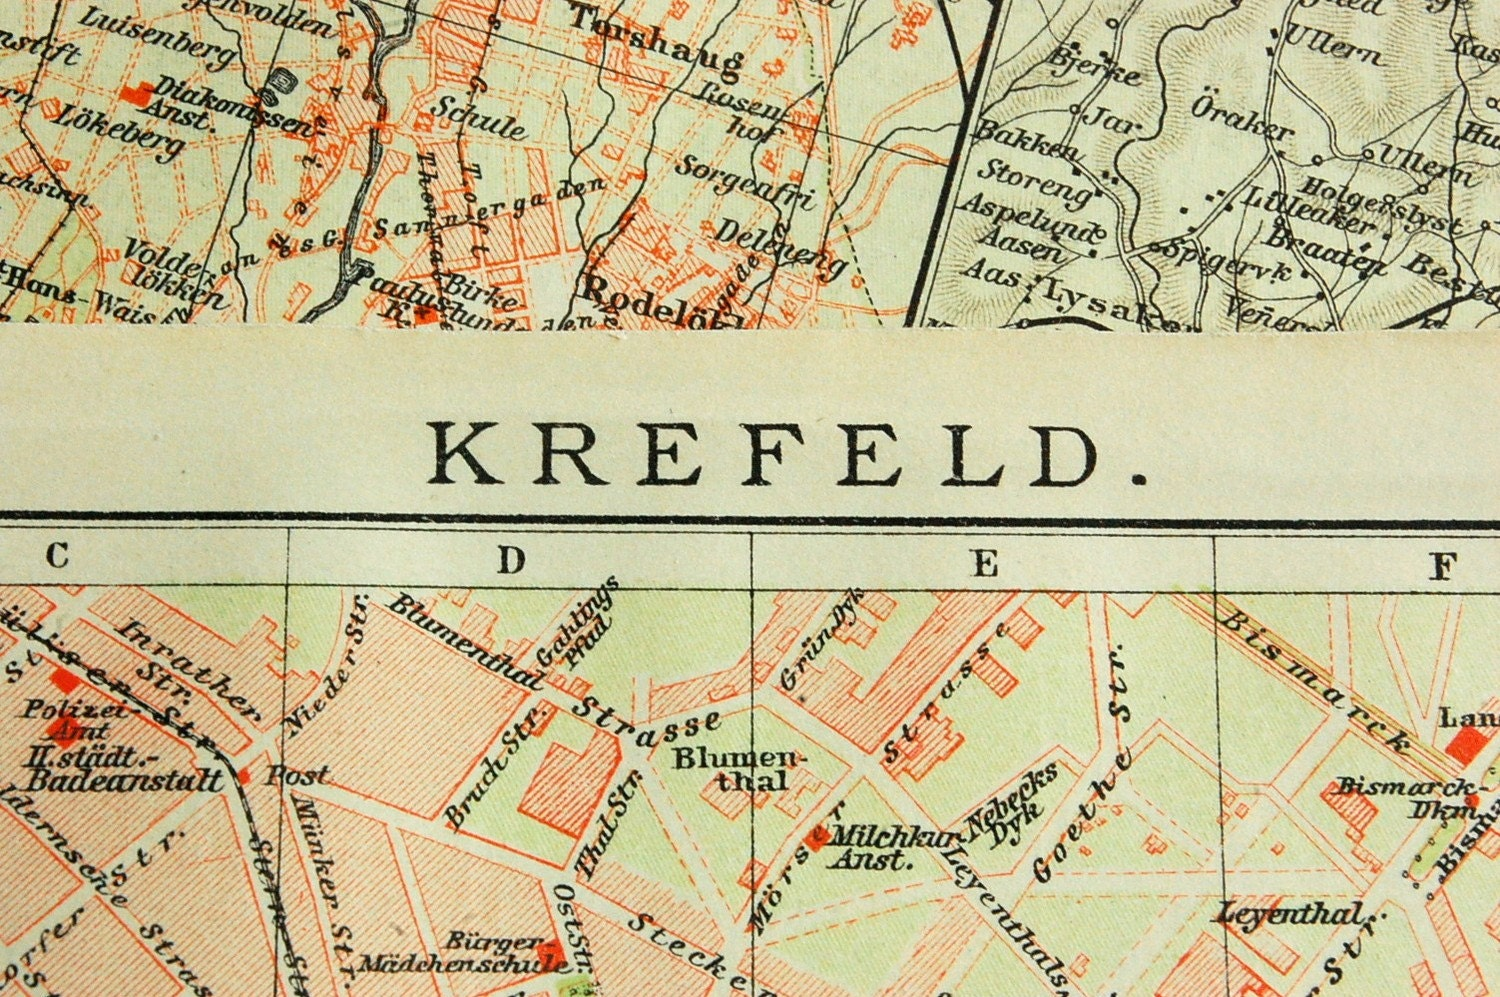 Krefeld Germany  City new picture : 1902 Vintage Map of Krefeld Germany Vintage City by bananastrudel